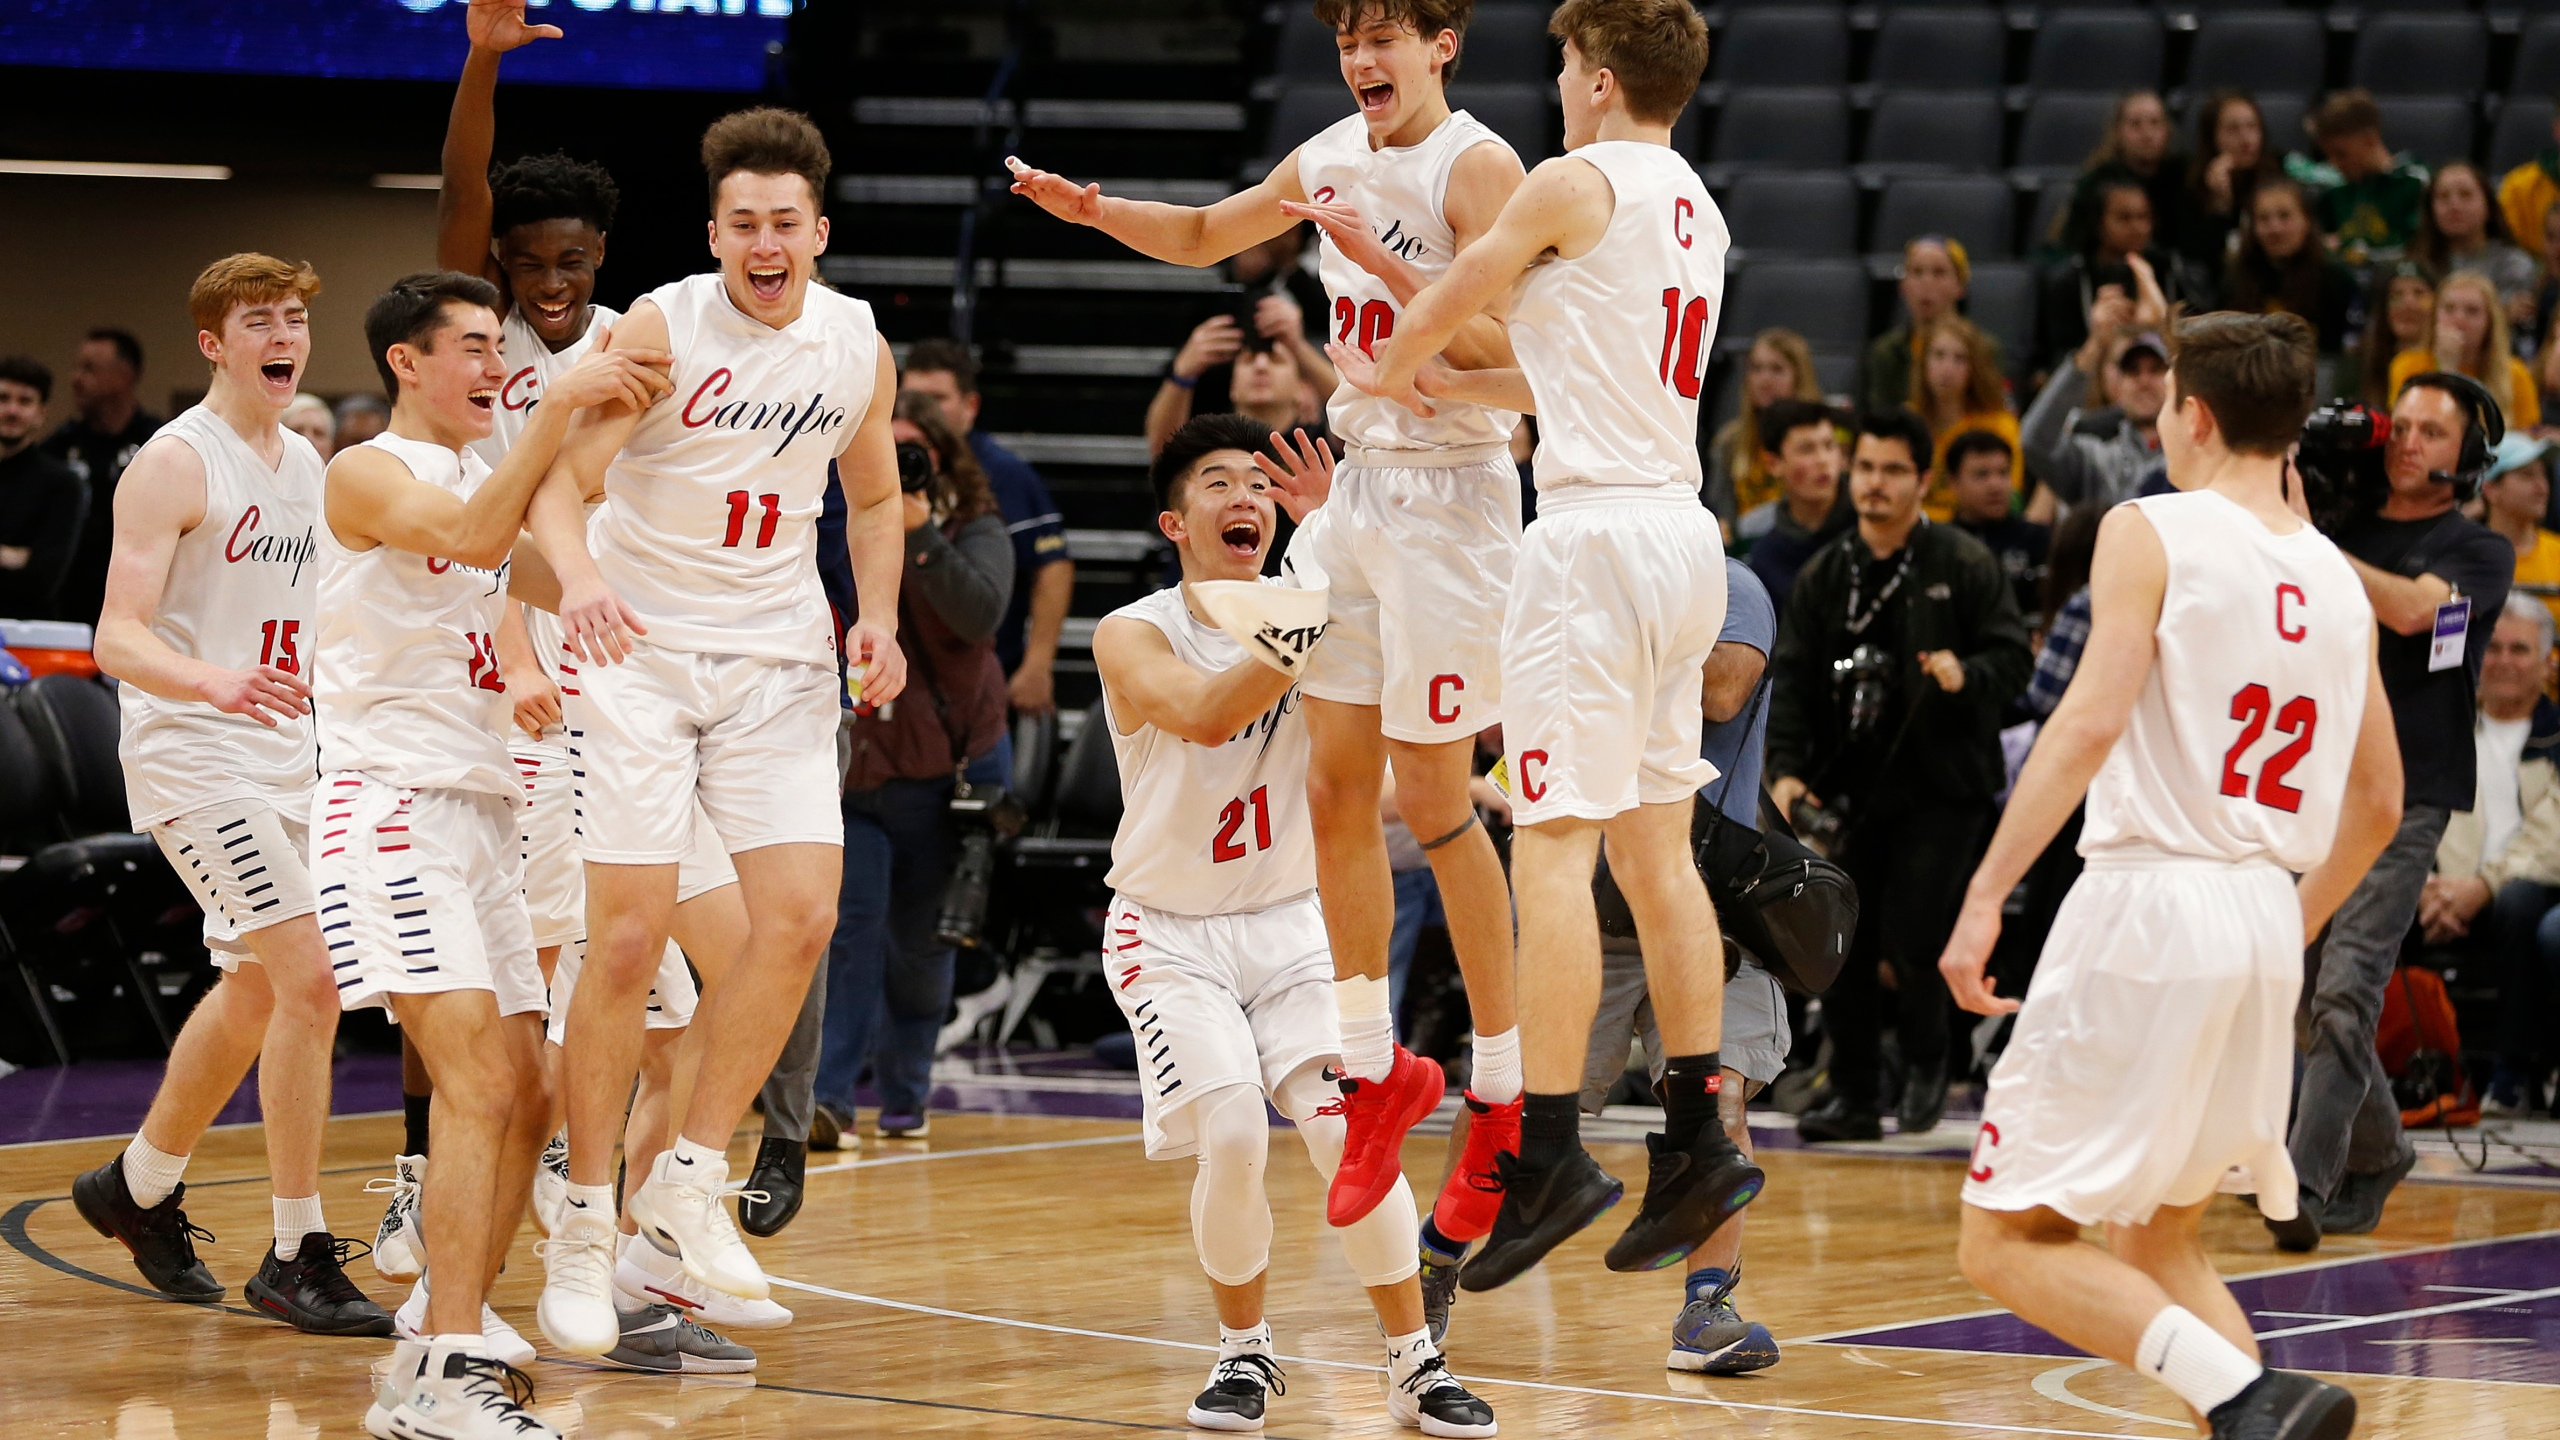 Campolindo players celebrate a win over Colony in the CIF boys' Division II state high school basketball championship game in Sacramento on March 9, 2019. (Rich Pedroncelli / Associated Press)